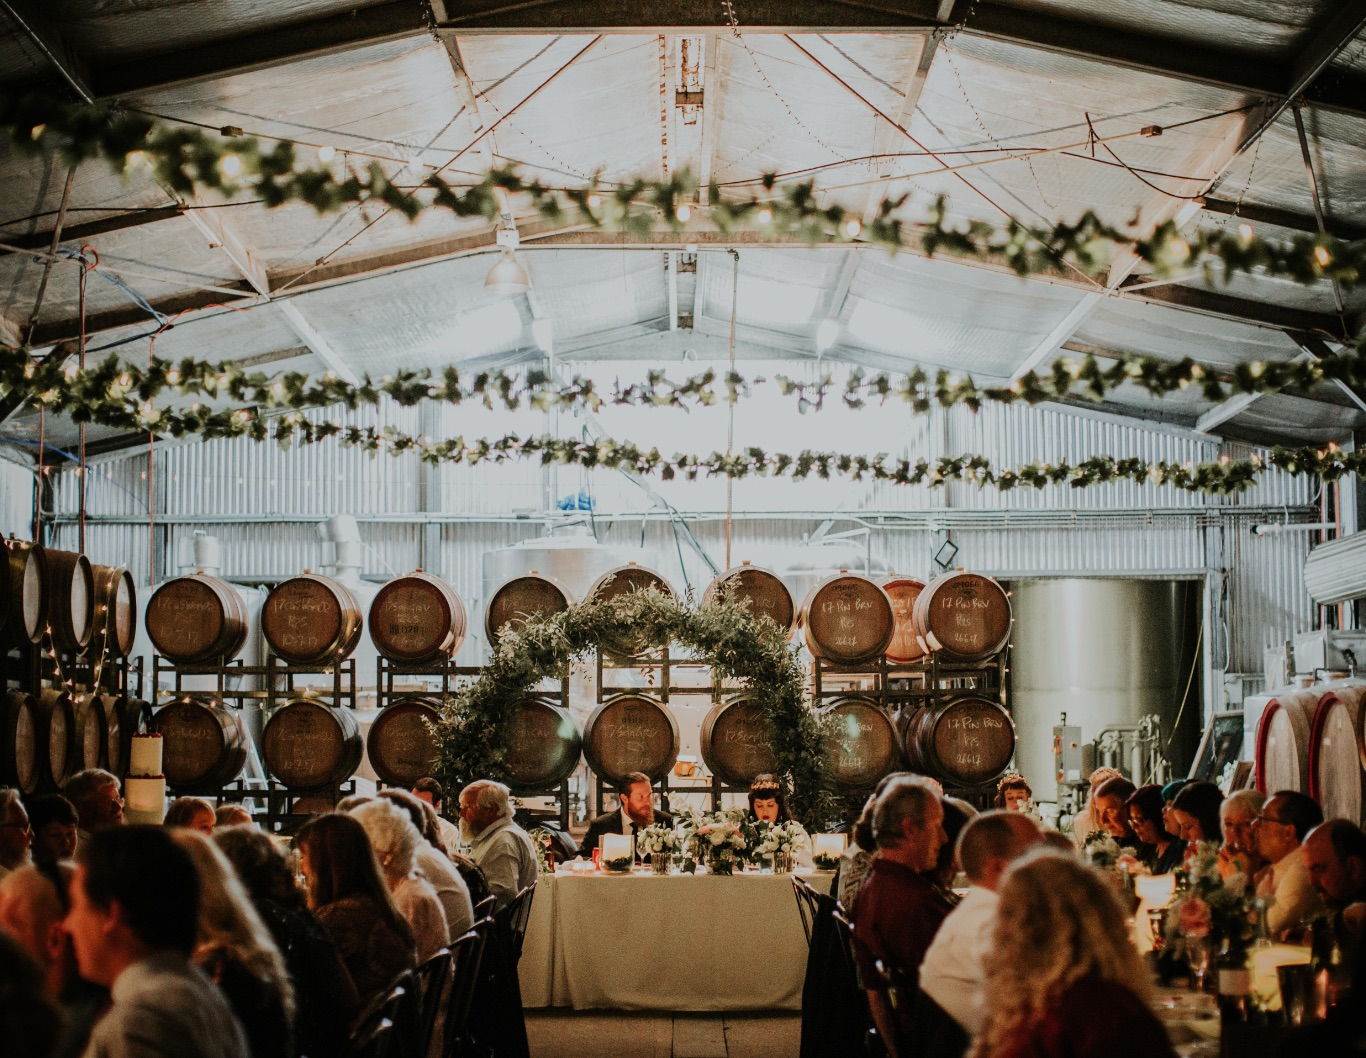 Couple sitting at wedding party table, with wine barrel racks behind them.